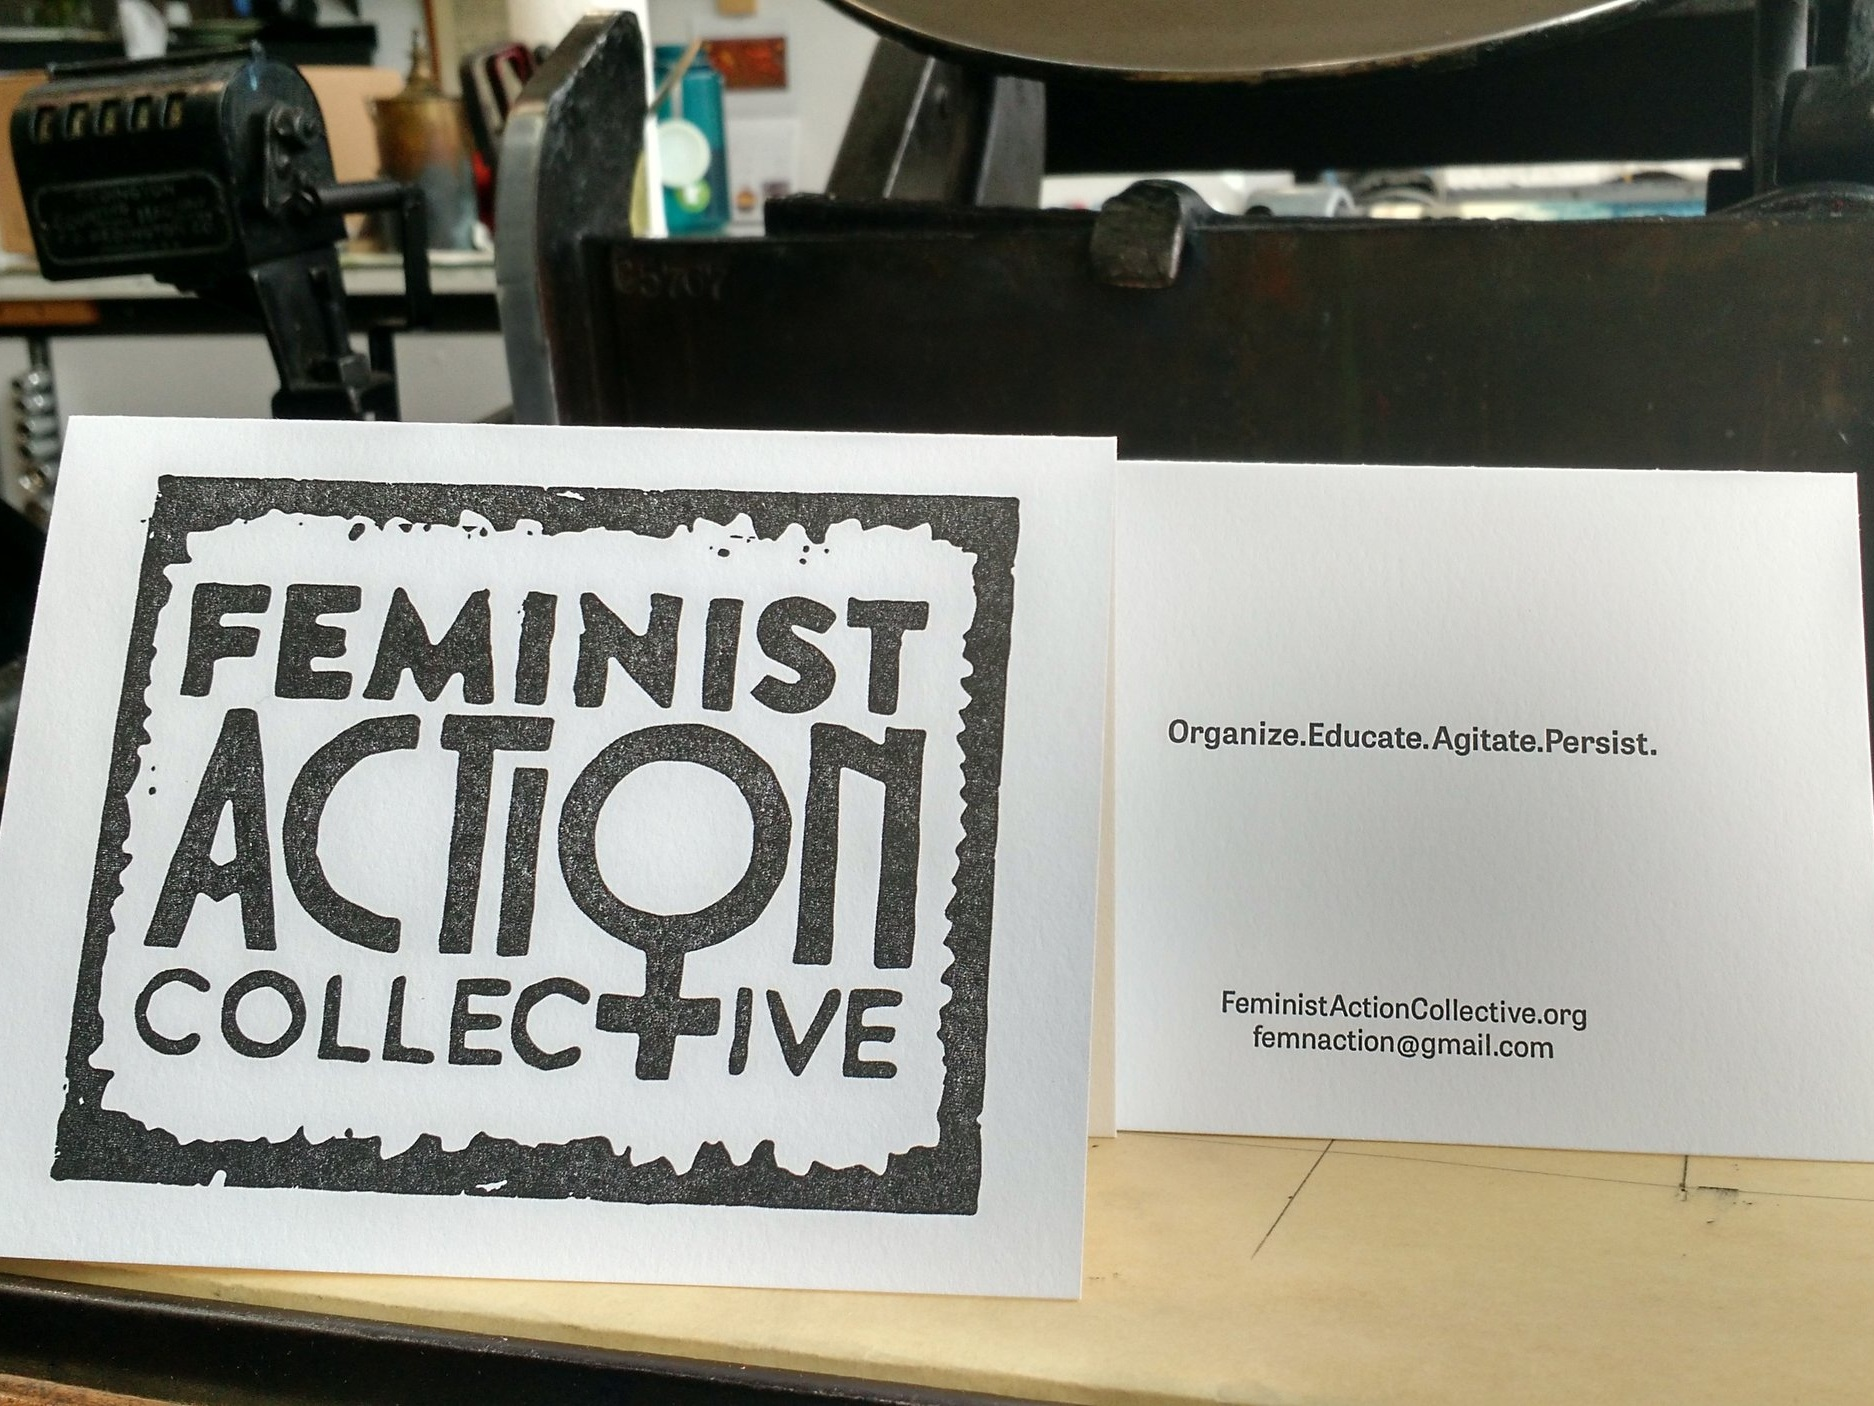 Feminist Action Collective Card